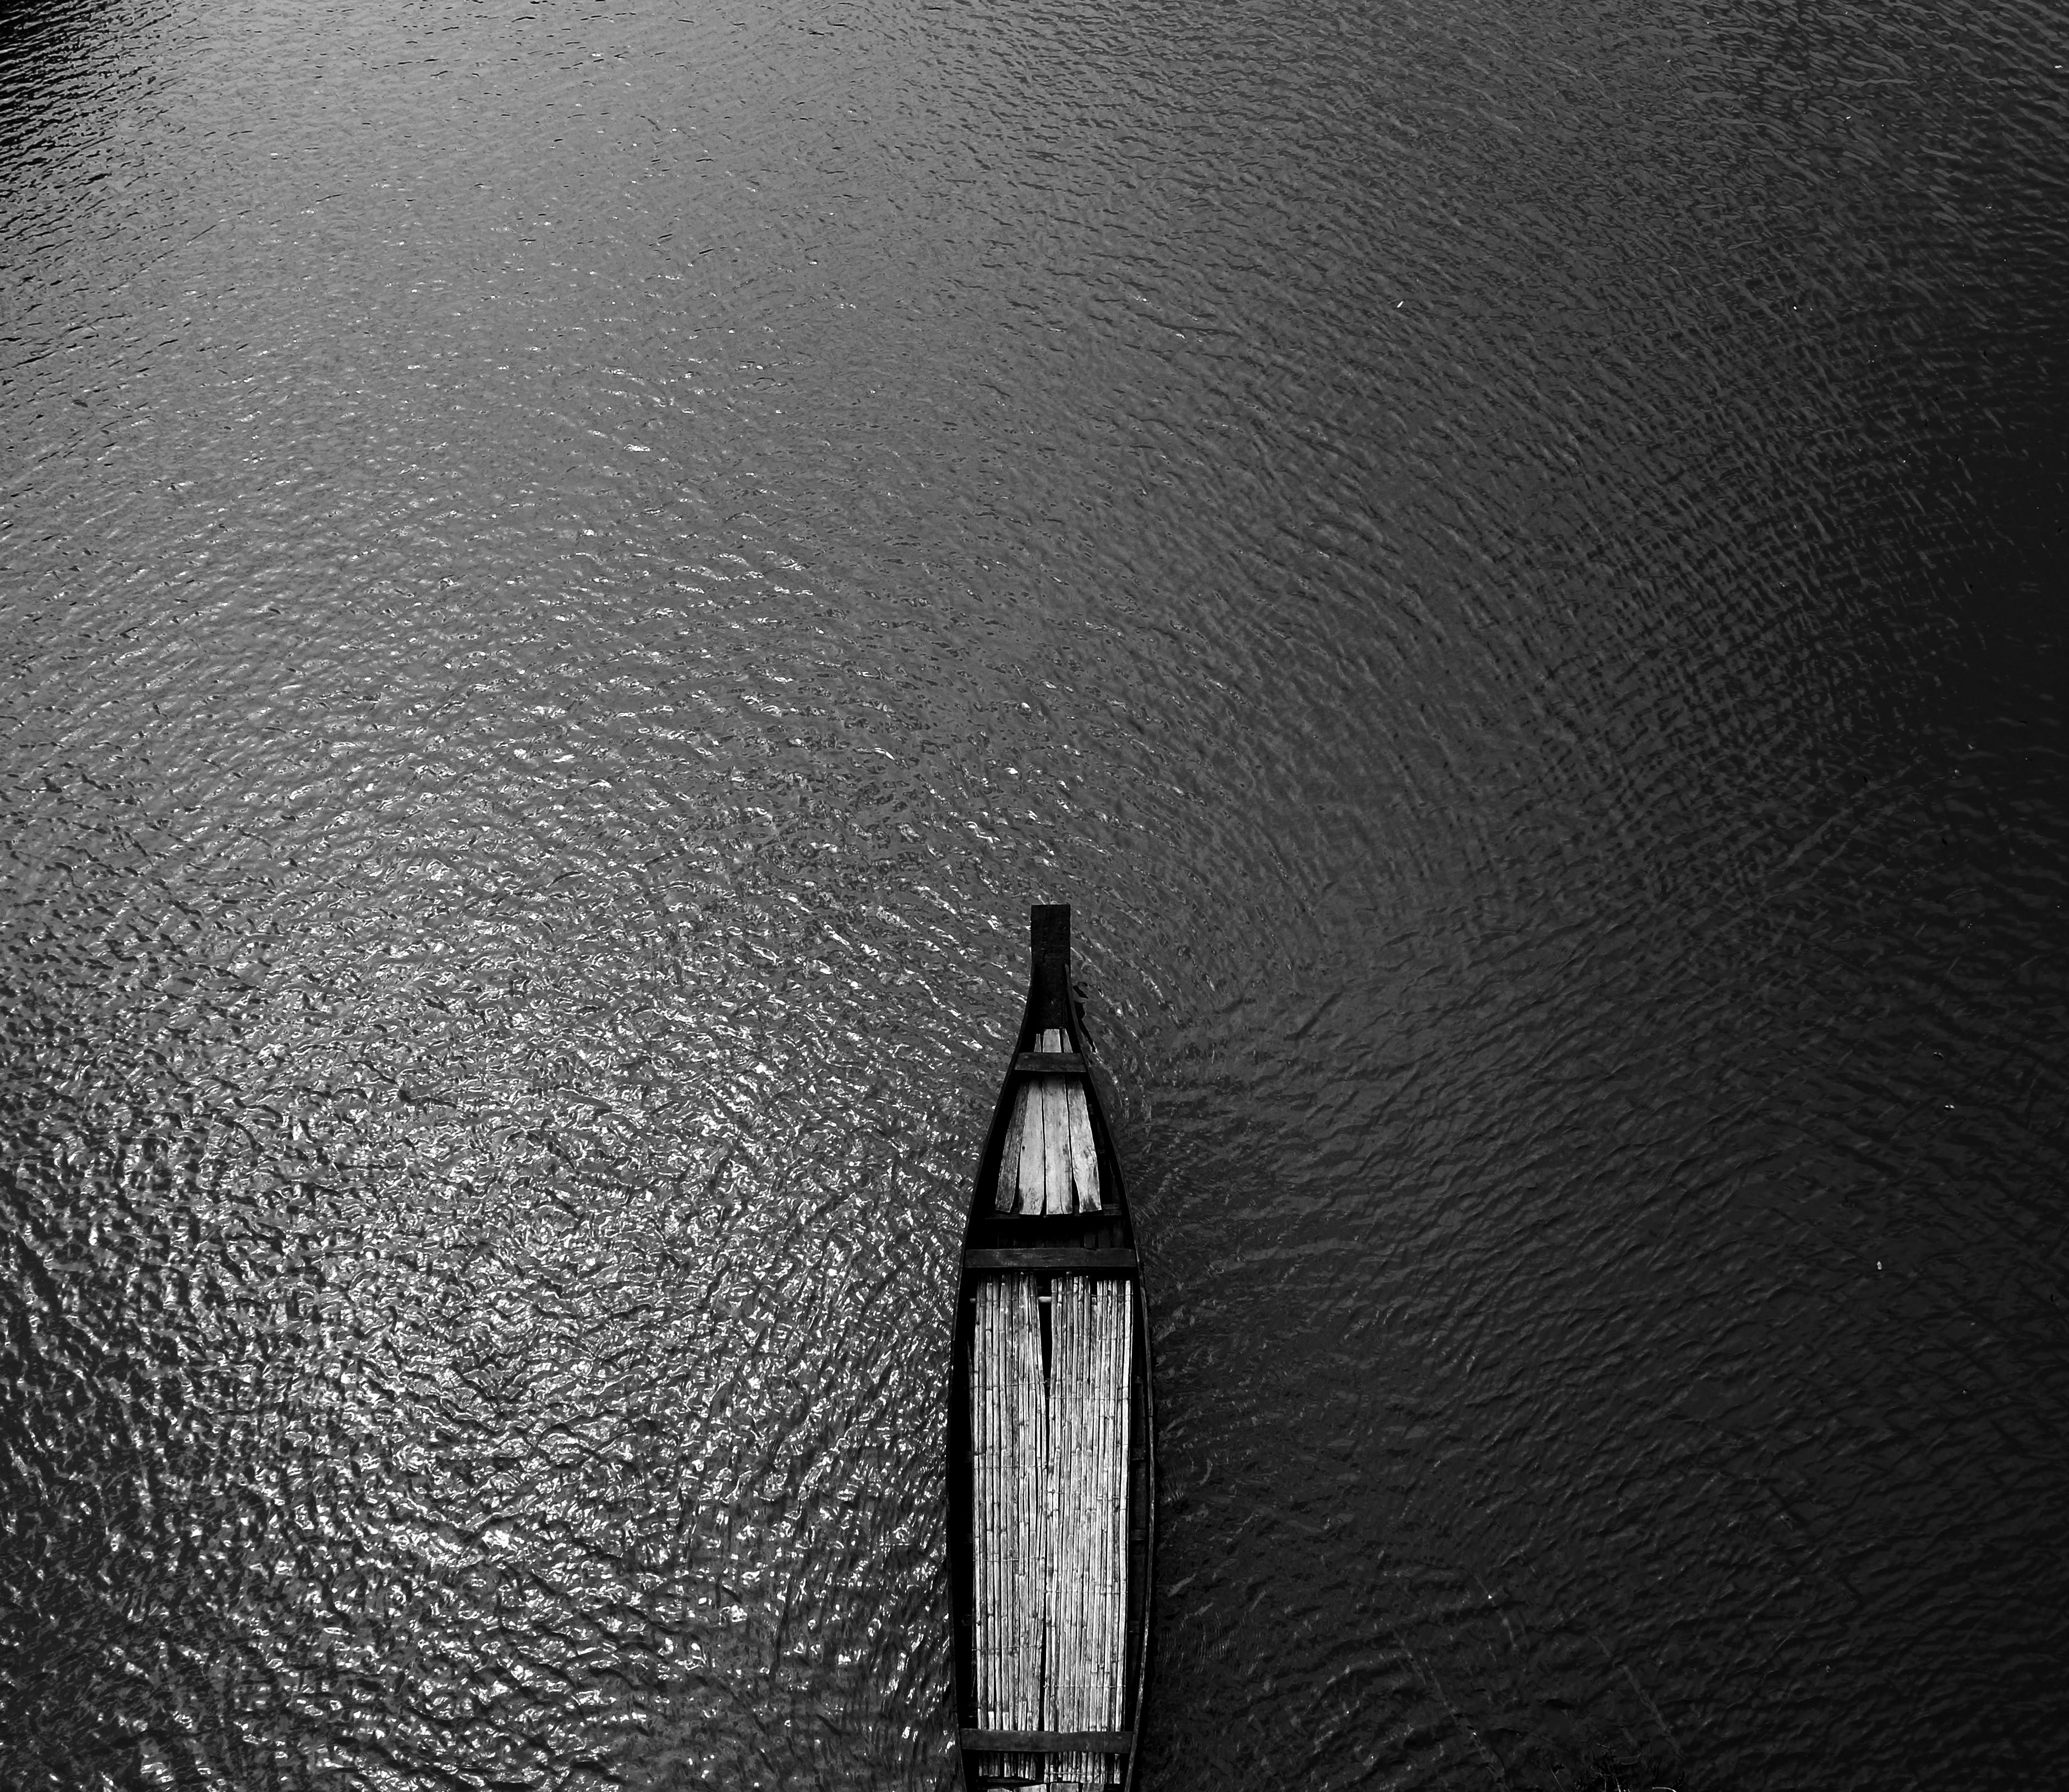 Aerial View Black Wooden Row Boat on Body of Water